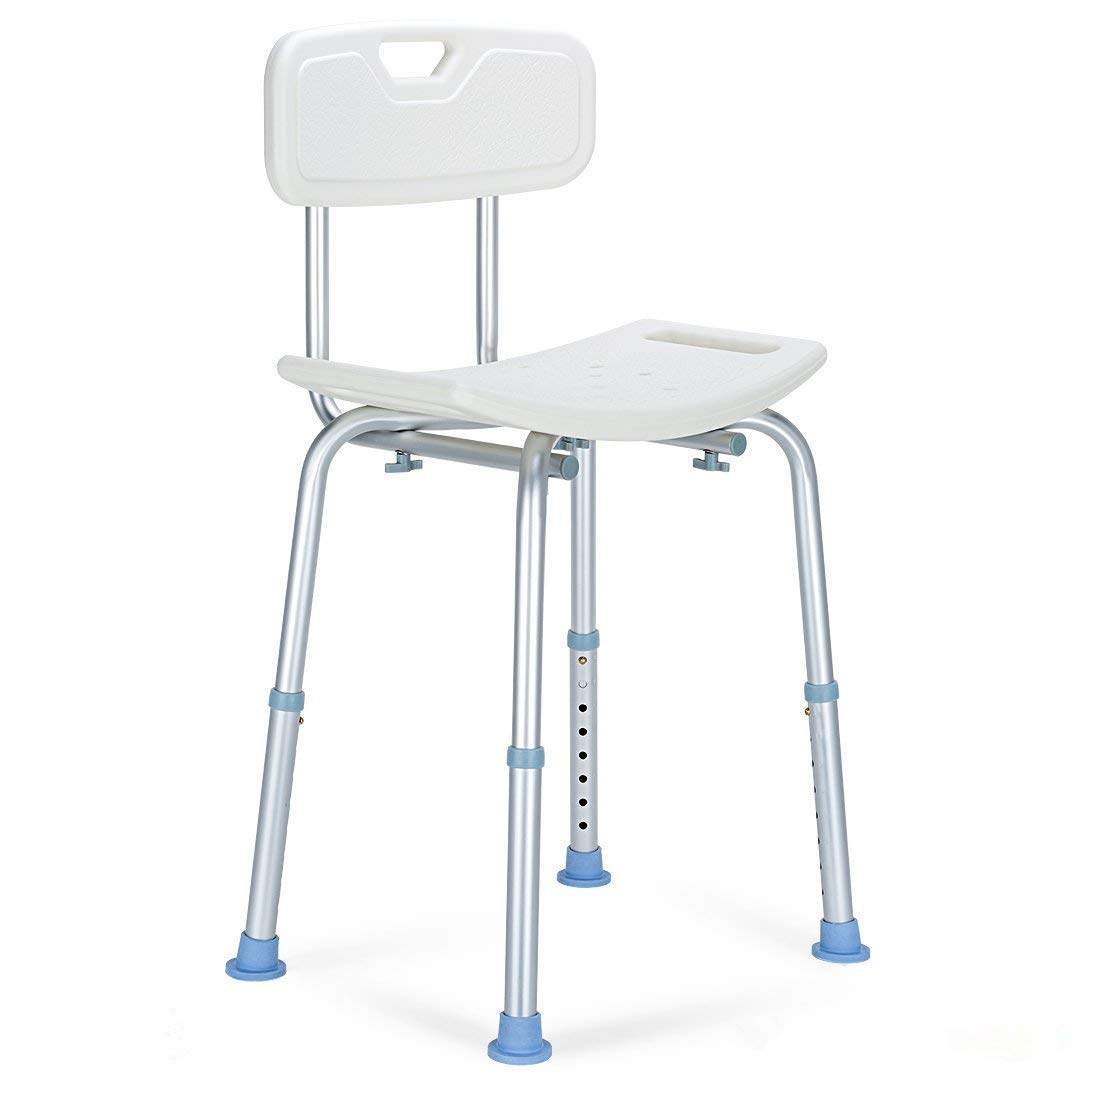 Oasisspace shower chair with back heavy duty adjustable shower seat stool medical tool free anti slip bathtub seat bench lightweight and durable for